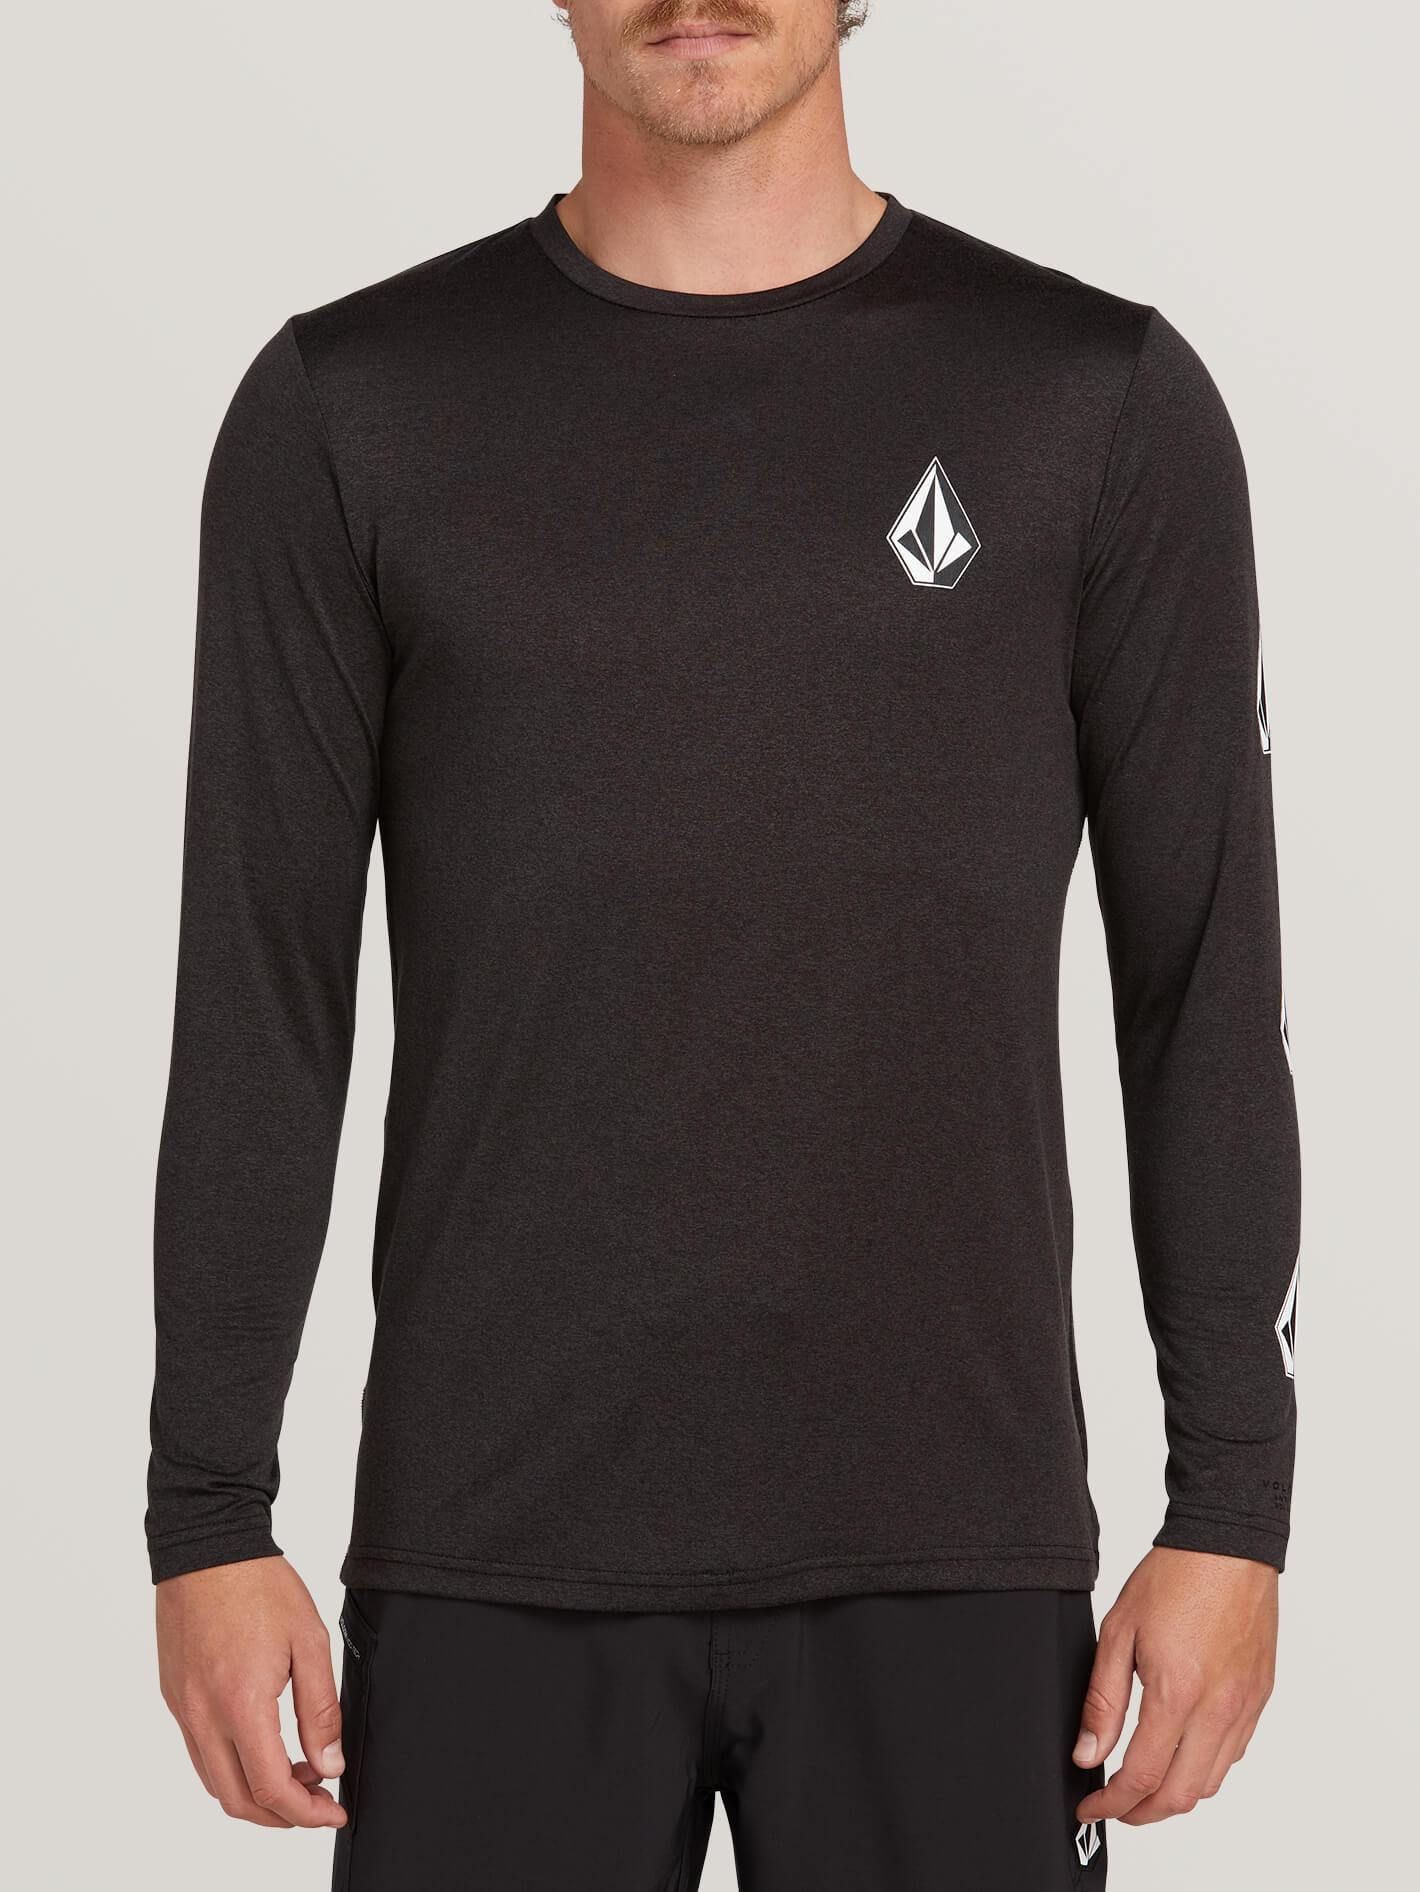 Volcom Deadly Stones Long Sleeve Upf 30 Rashguard - Black - Black - XS